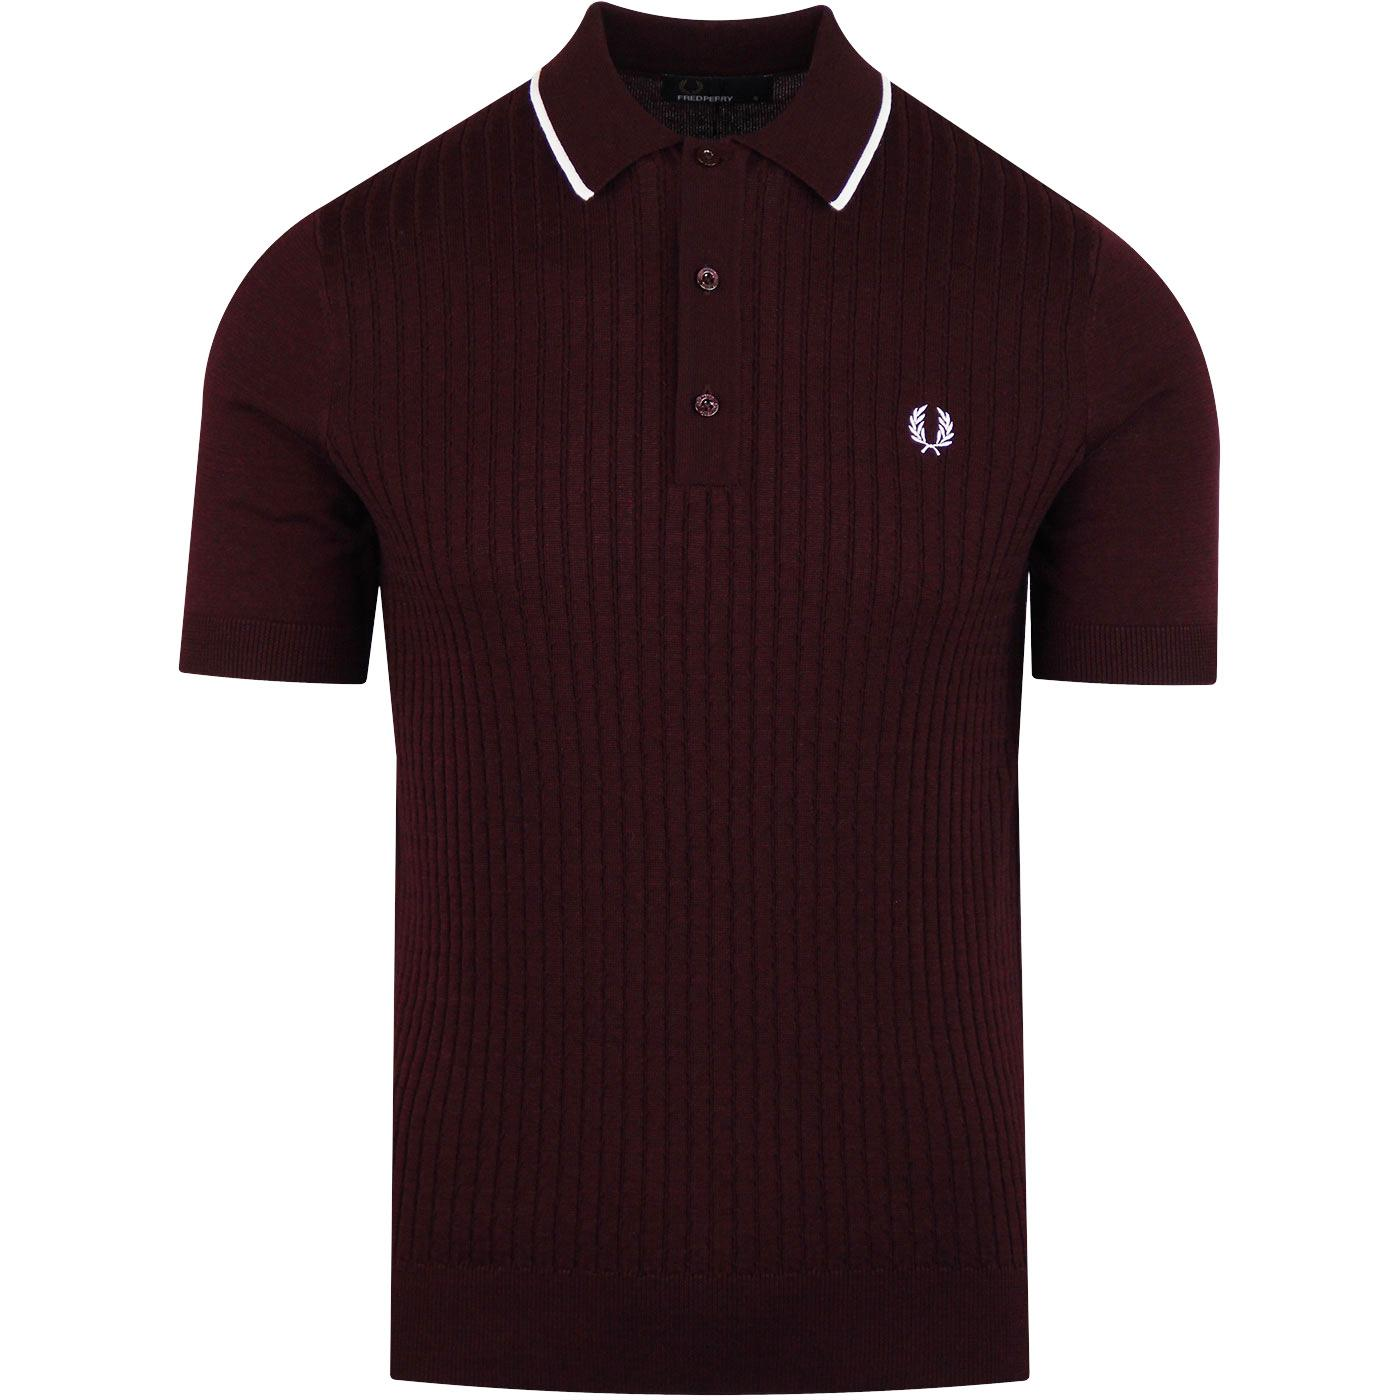 FRED PERRY Mod Ribbed Knit Tipped Polo (Mahogany)